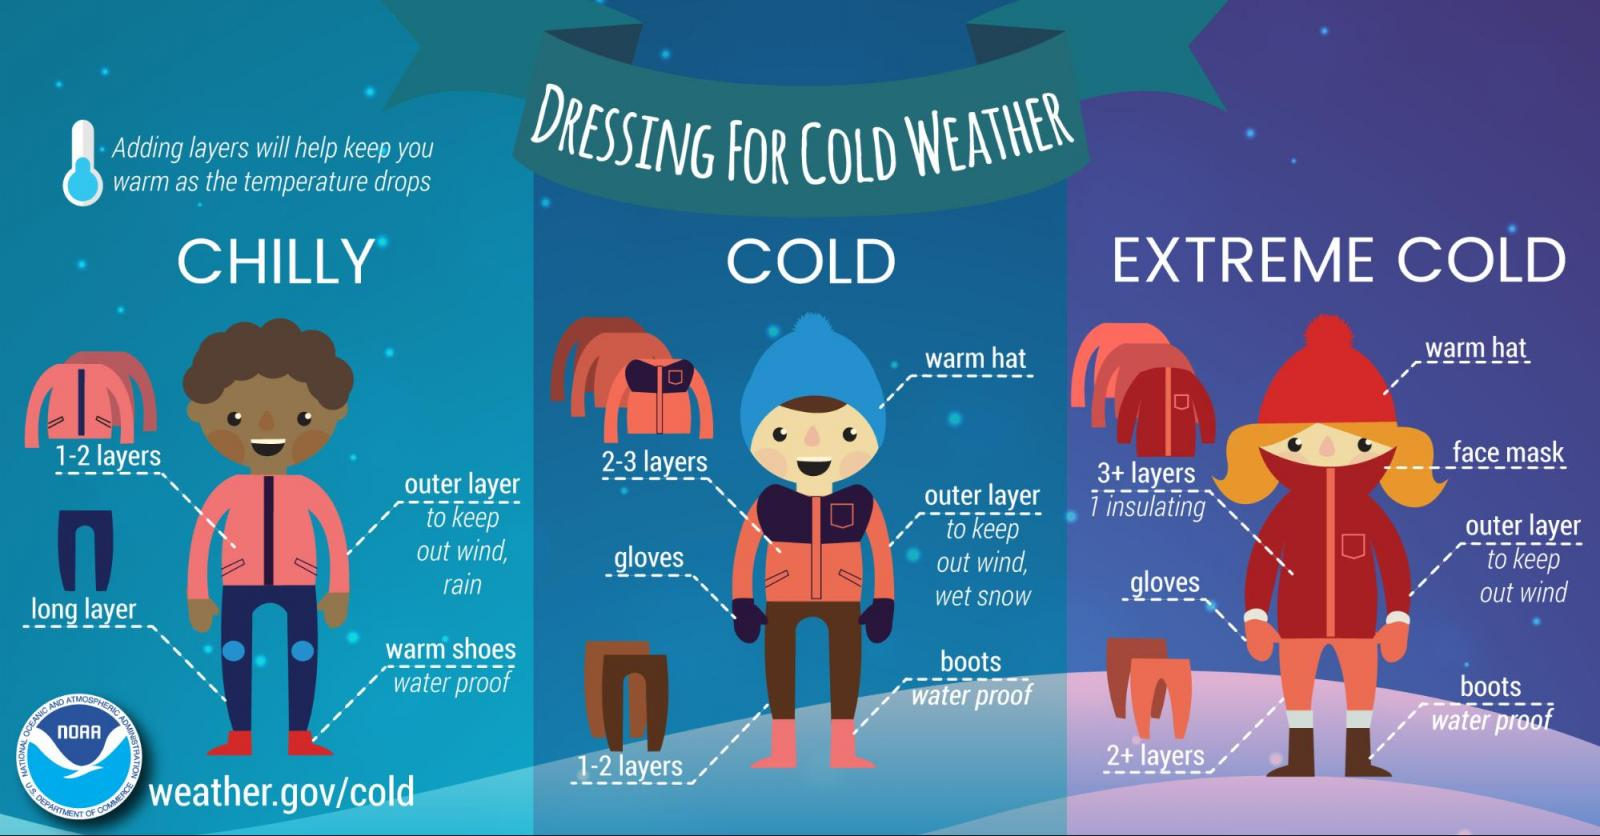 Tips for Dressing for Cold Weather